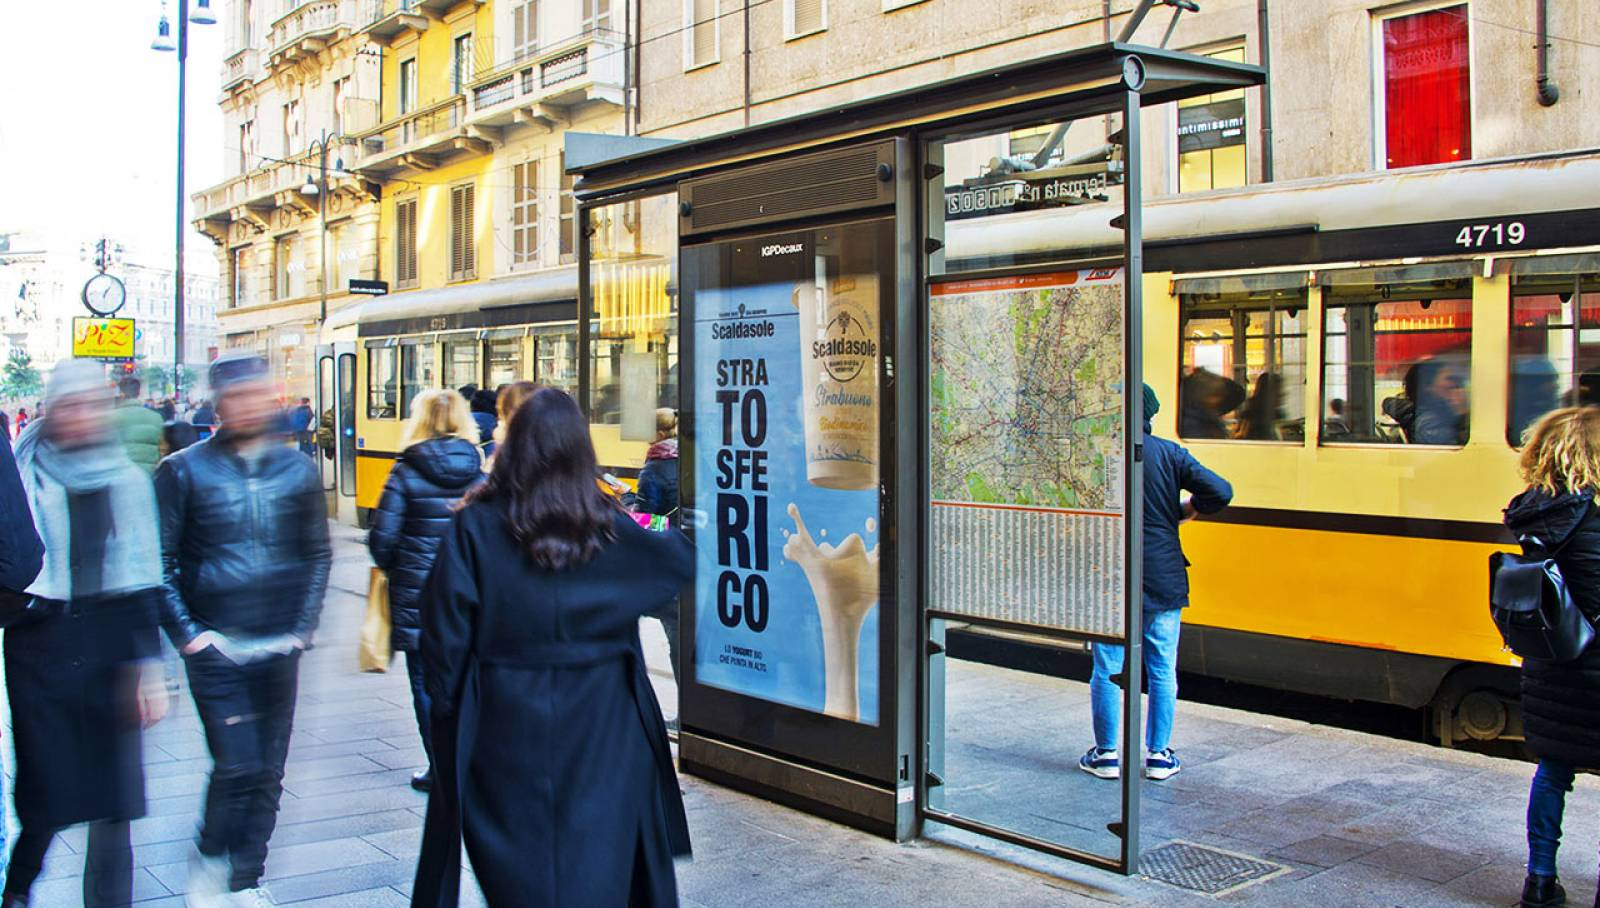 Out of Home advertising in Milan IGPDecaux Bus shelters for Scaldasole